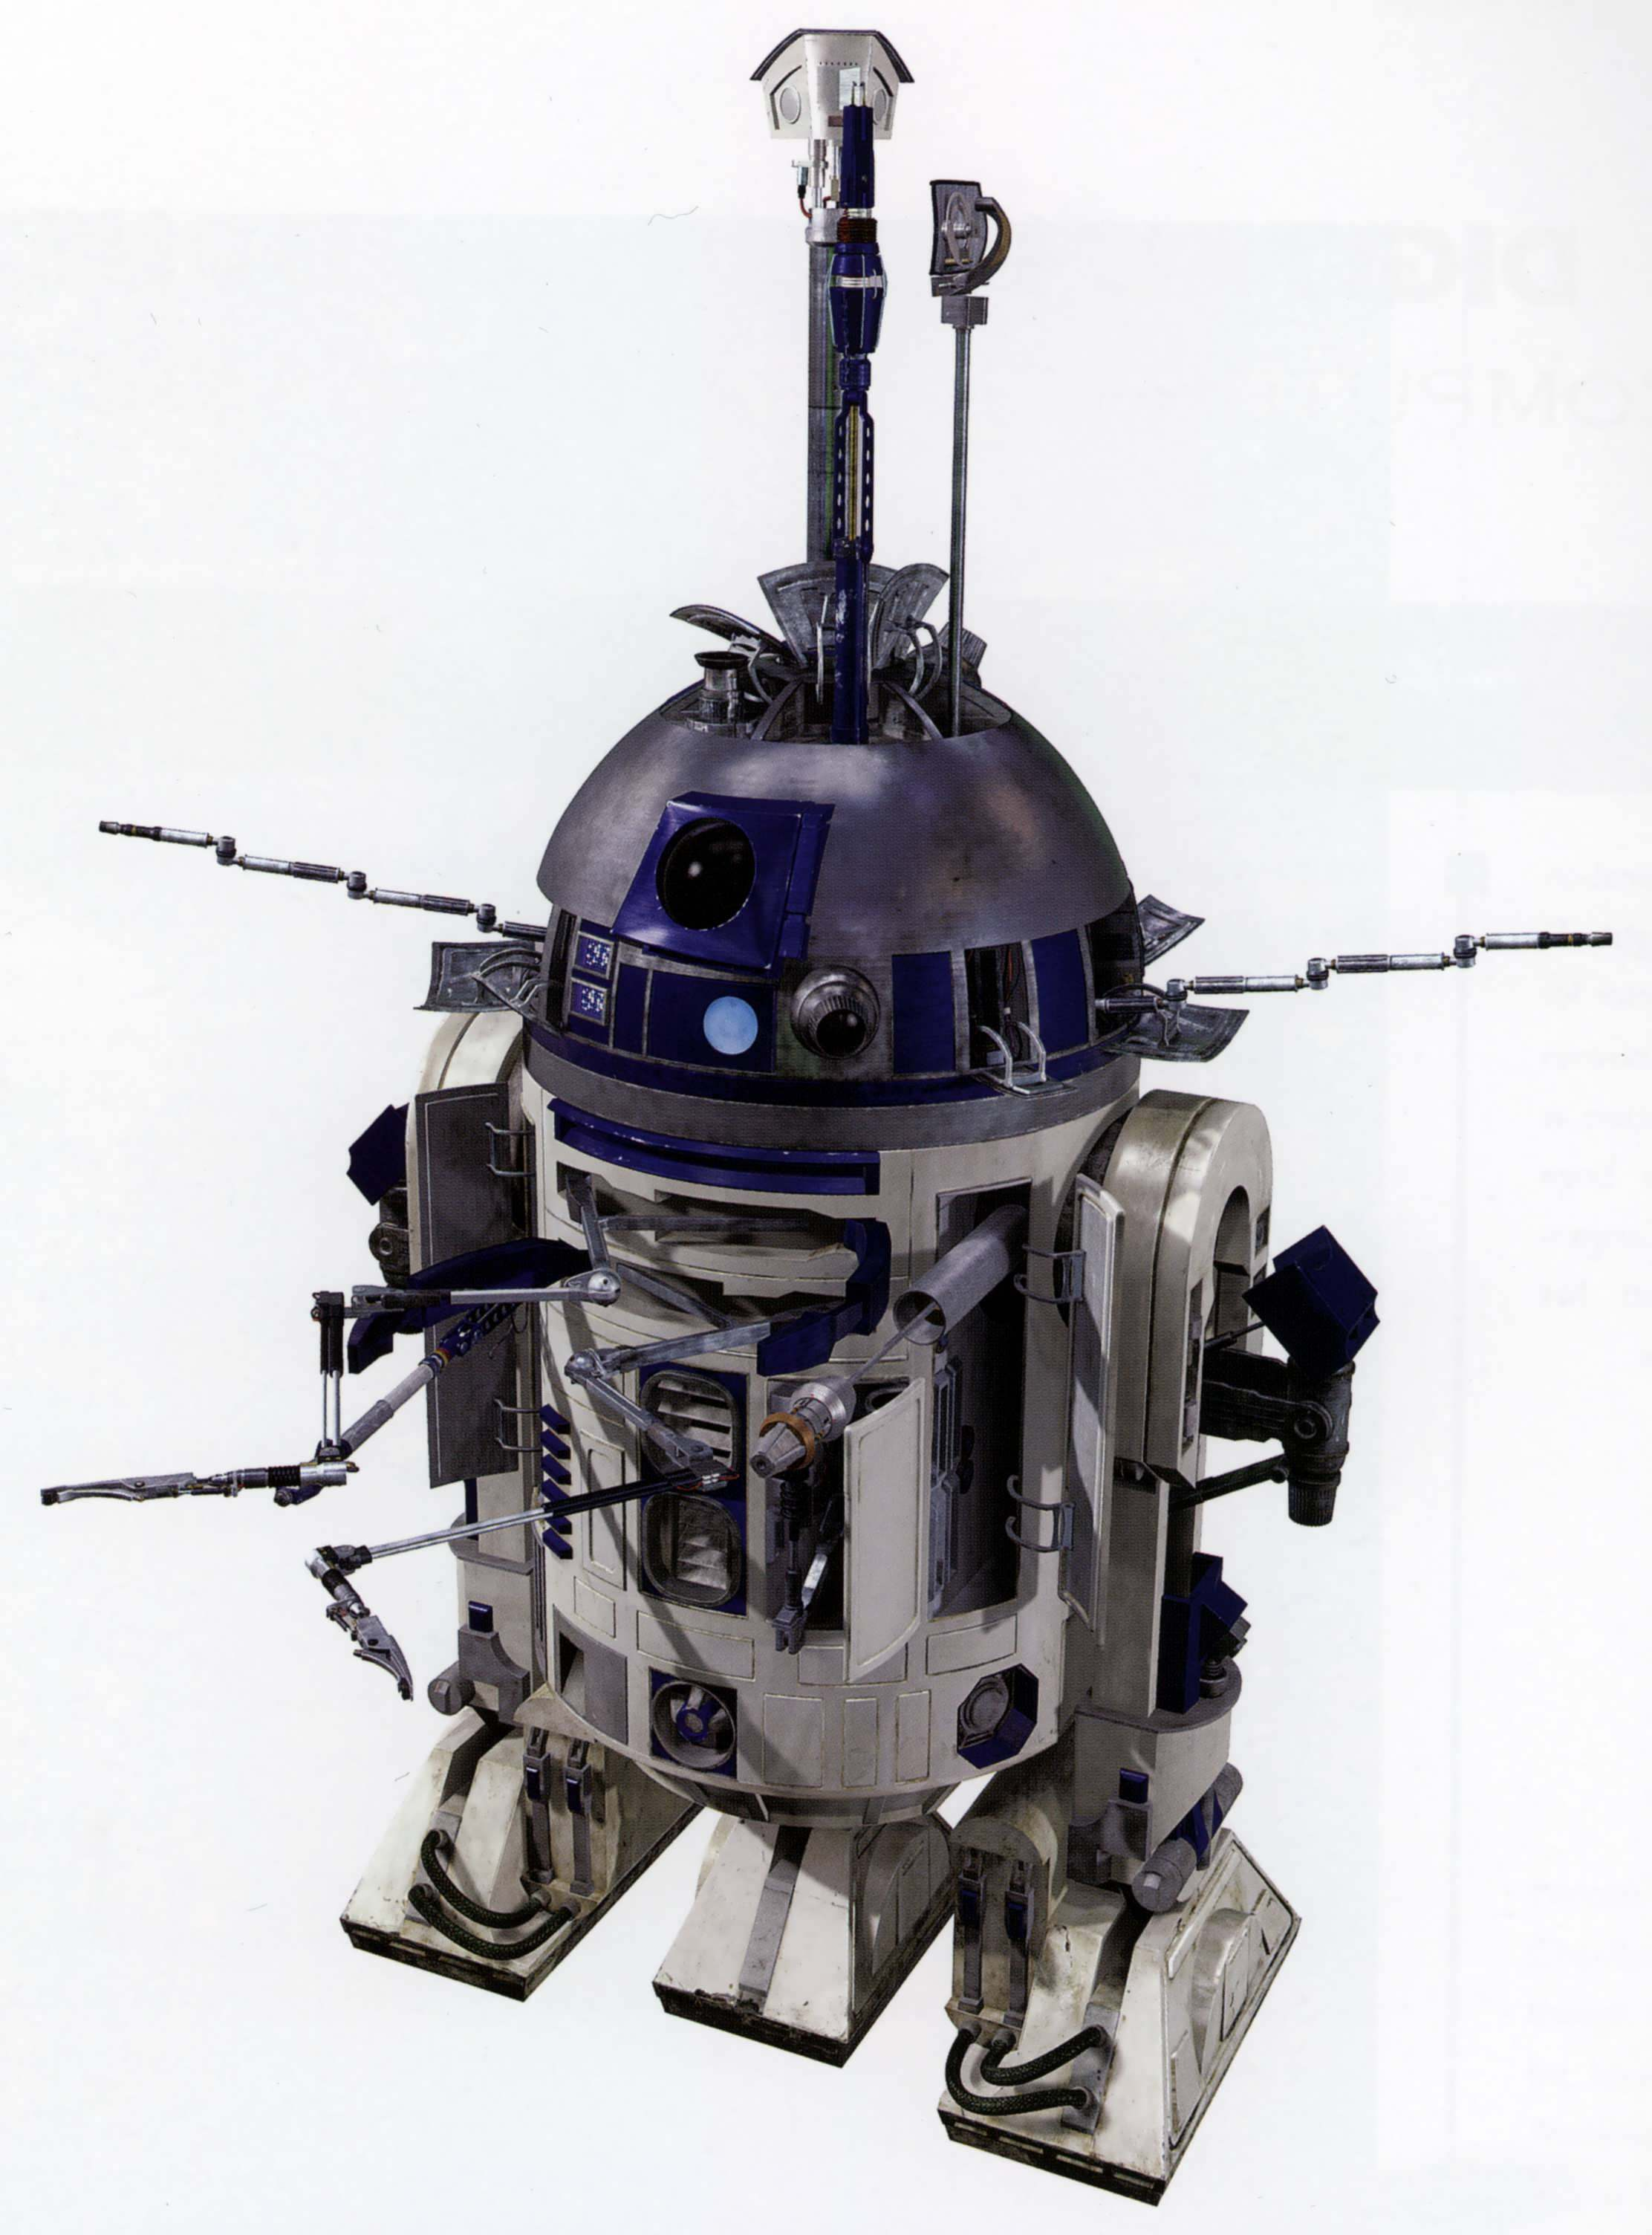 R2 Series Astromech Droid Wookieepedia The Star Wars Wiki